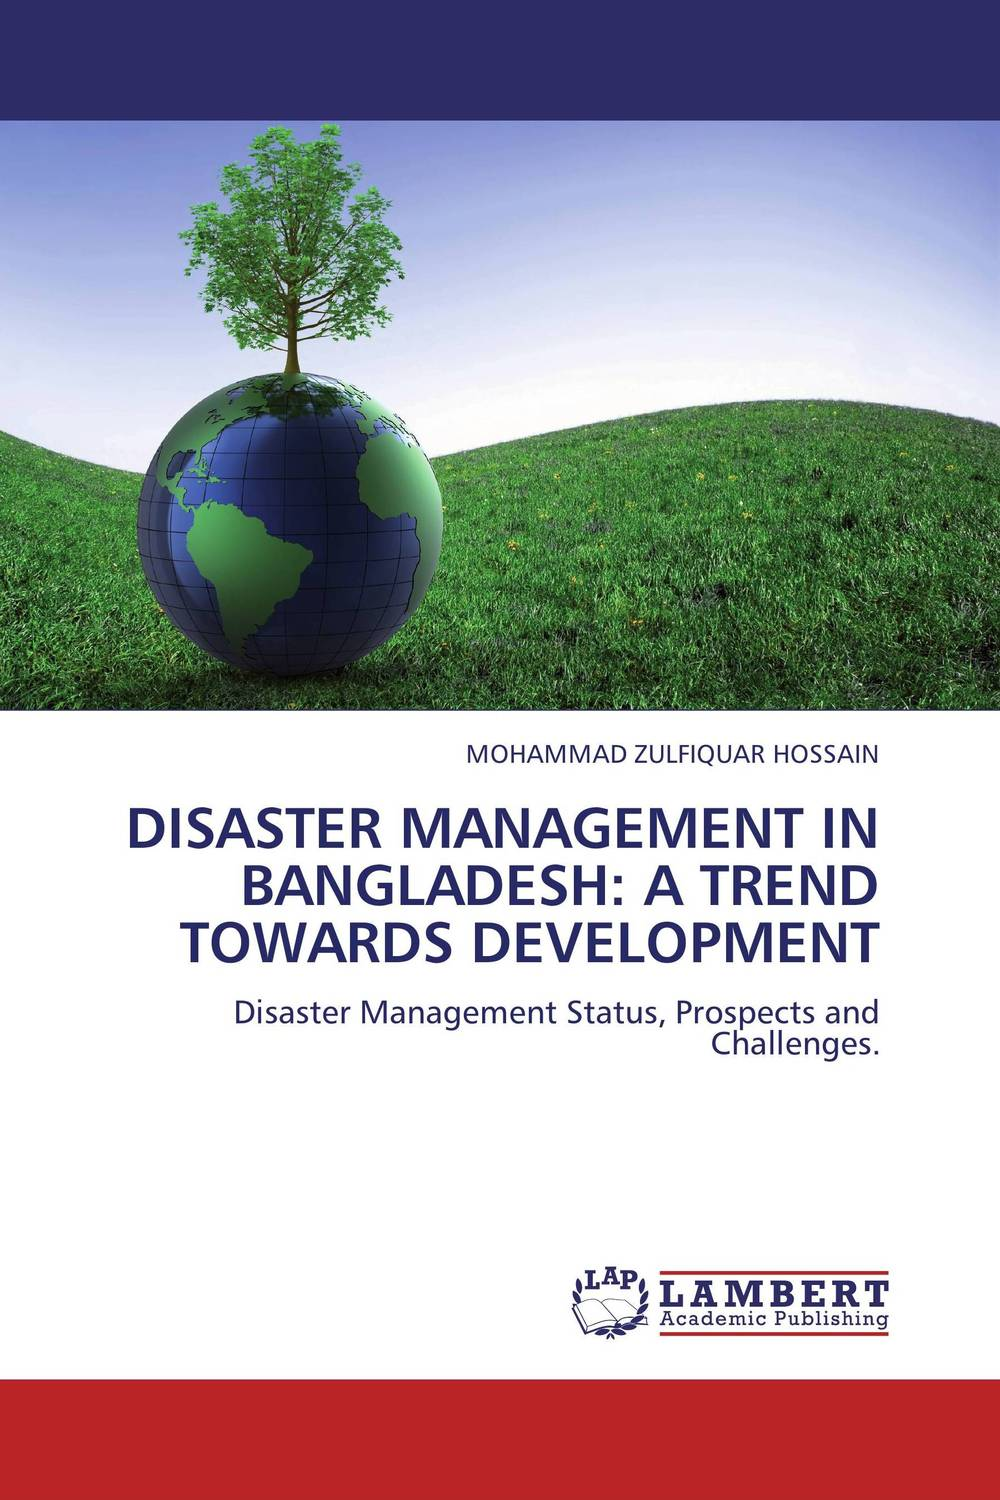 DISASTER MANAGEMENT IN BANGLADESH: A TREND TOWARDS DEVELOPMENT geopolitics of disaster relief and role of diplomacy